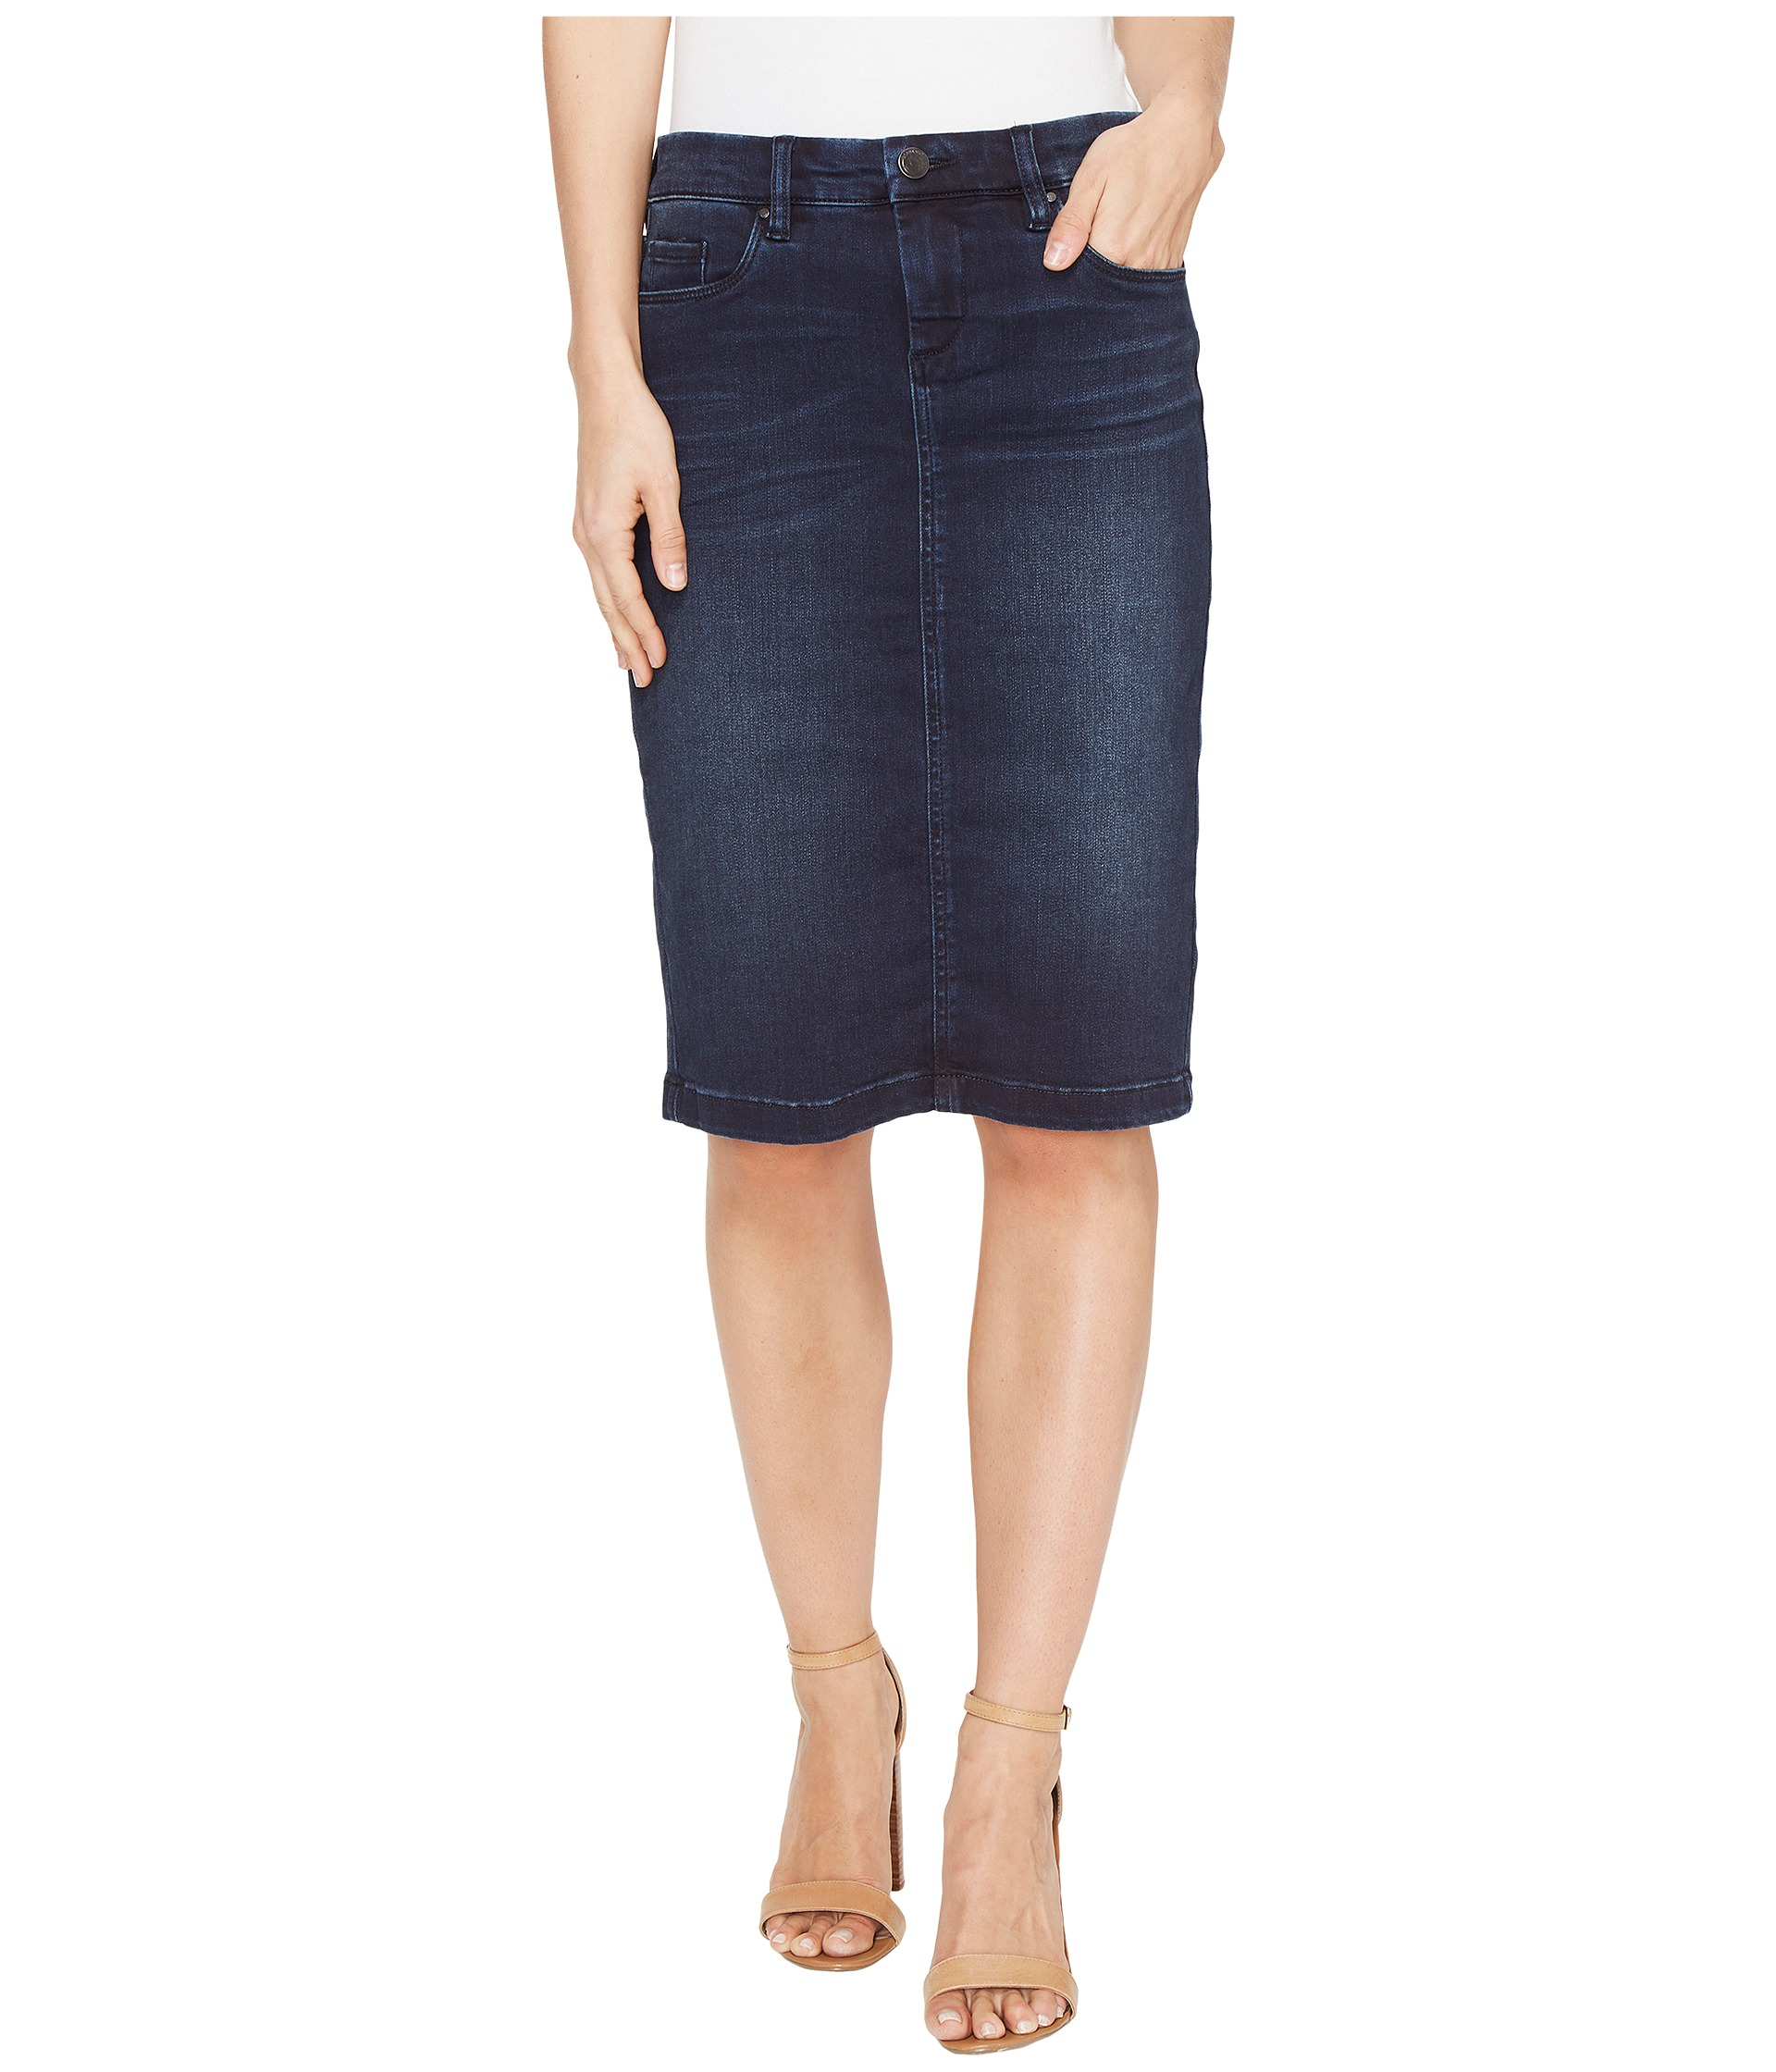 Find a great selection of BLANKNYC clothing for women at steam-key.gq Shop for jeans, shorts, skirts and more. Totally free shipping and returns.